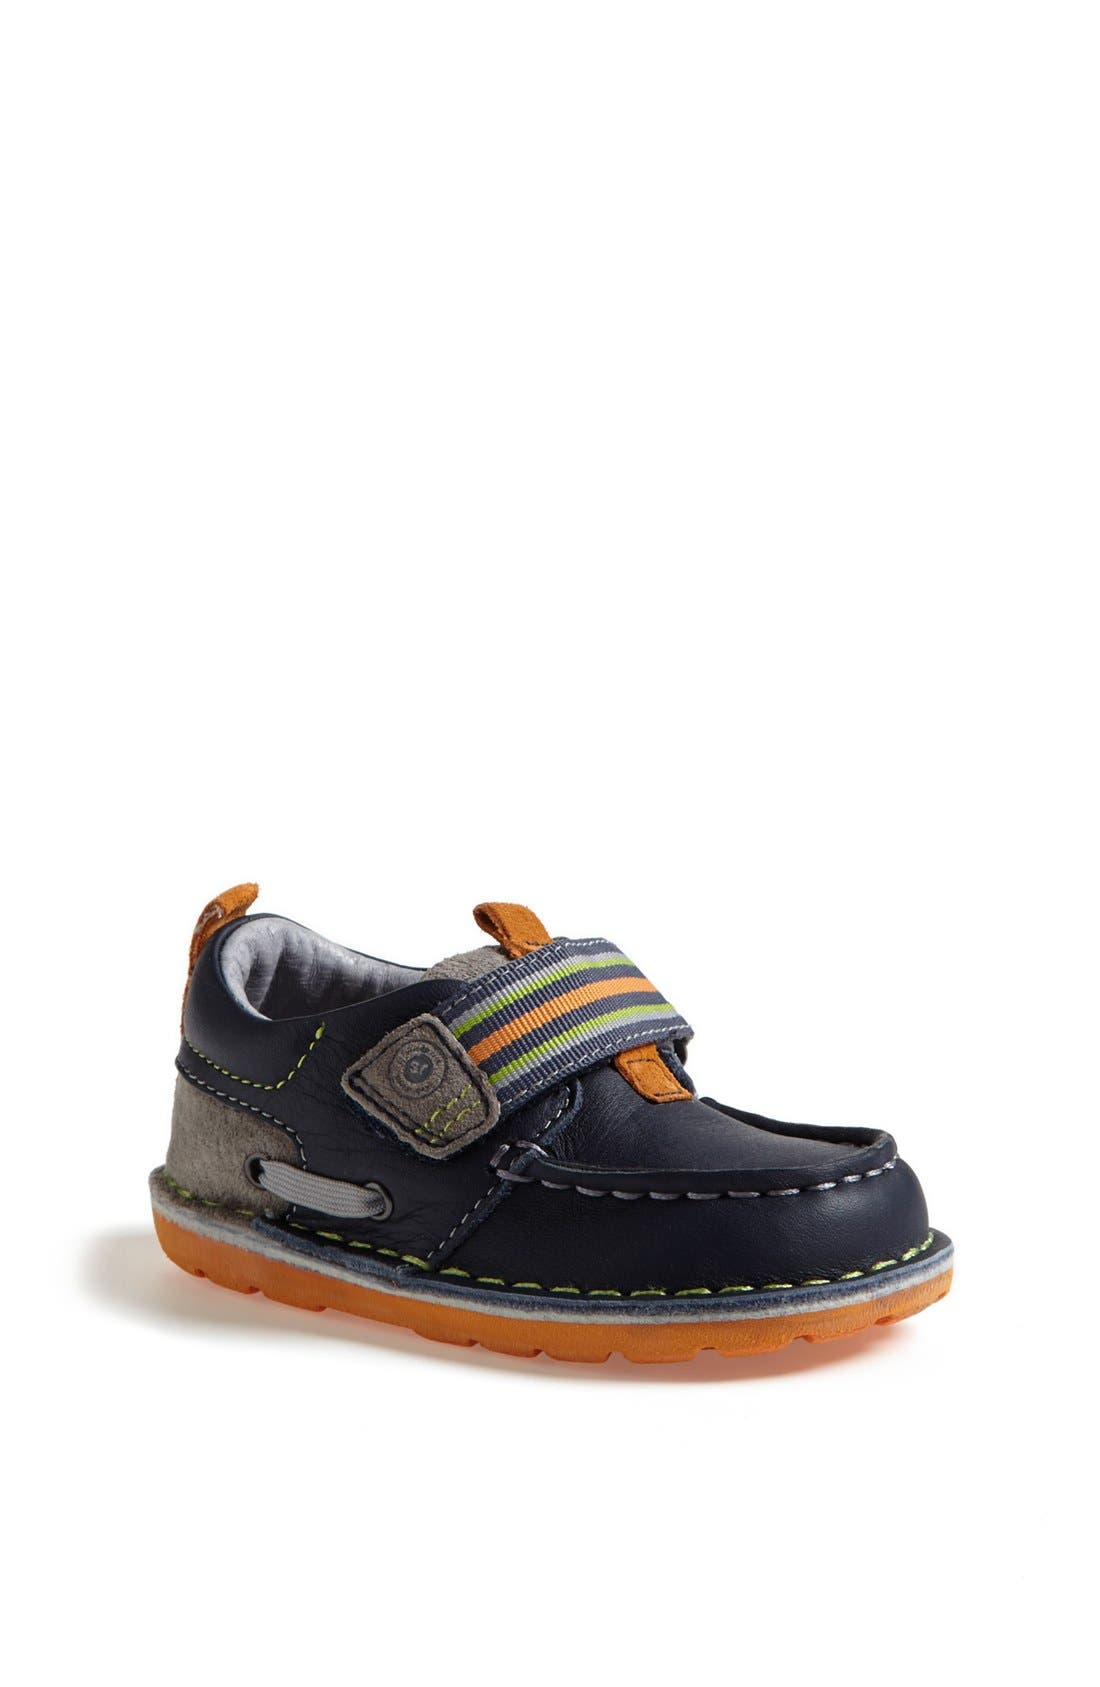 Alternate Image 1 Selected - Stride Rite 'Medallion Collection - Dane' Slip-On (Baby, Walker & Toddler)